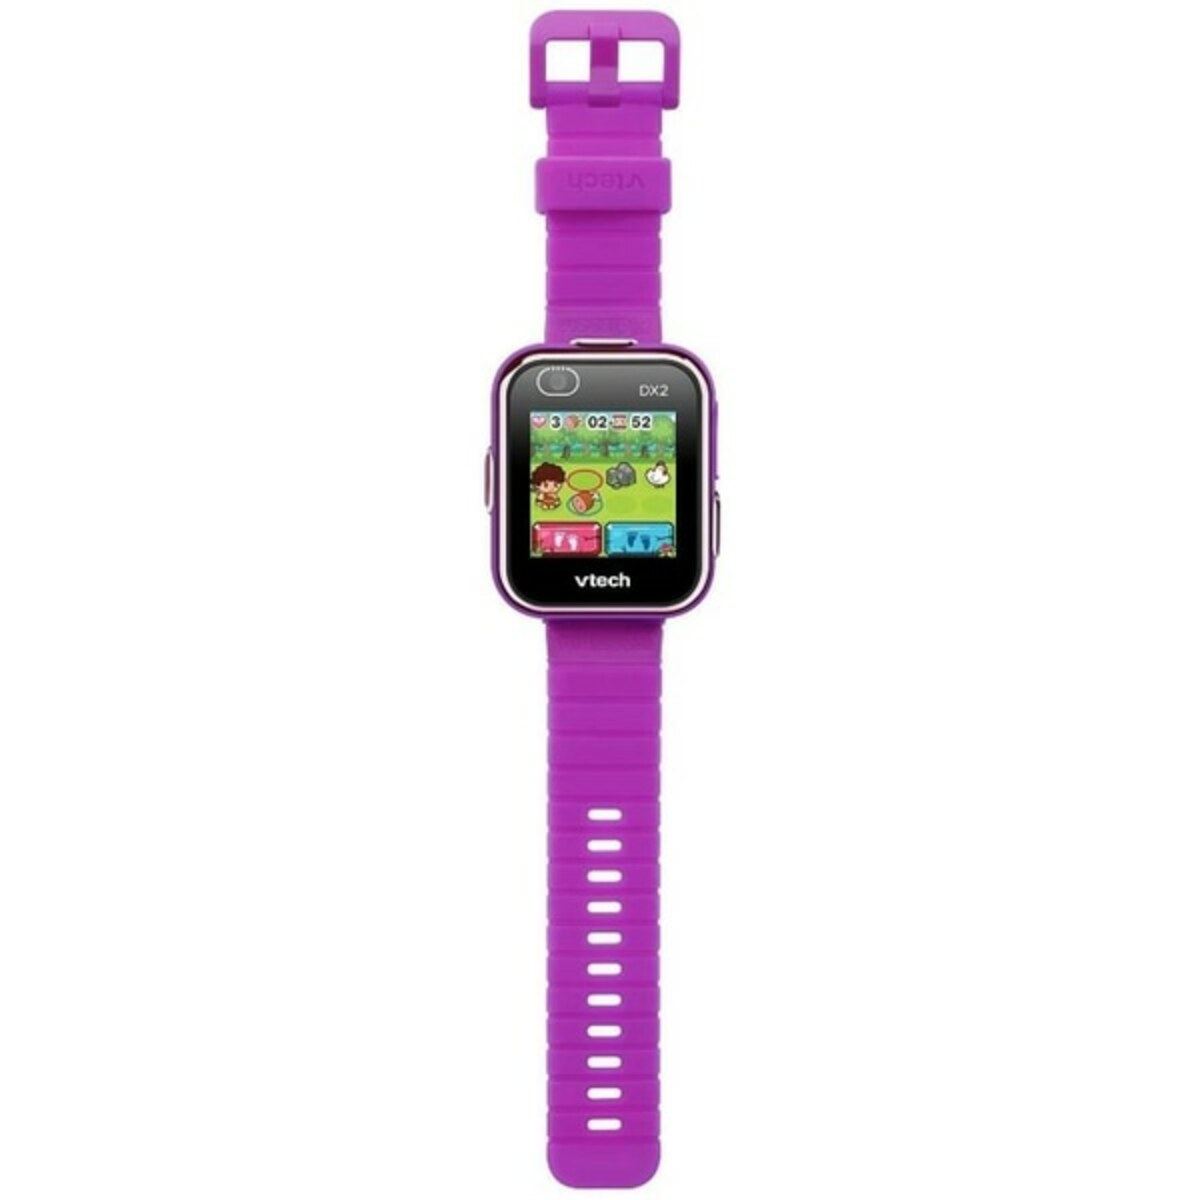 Bild 2 von VTech - Kidizoom: Smart Watch DX2, lila